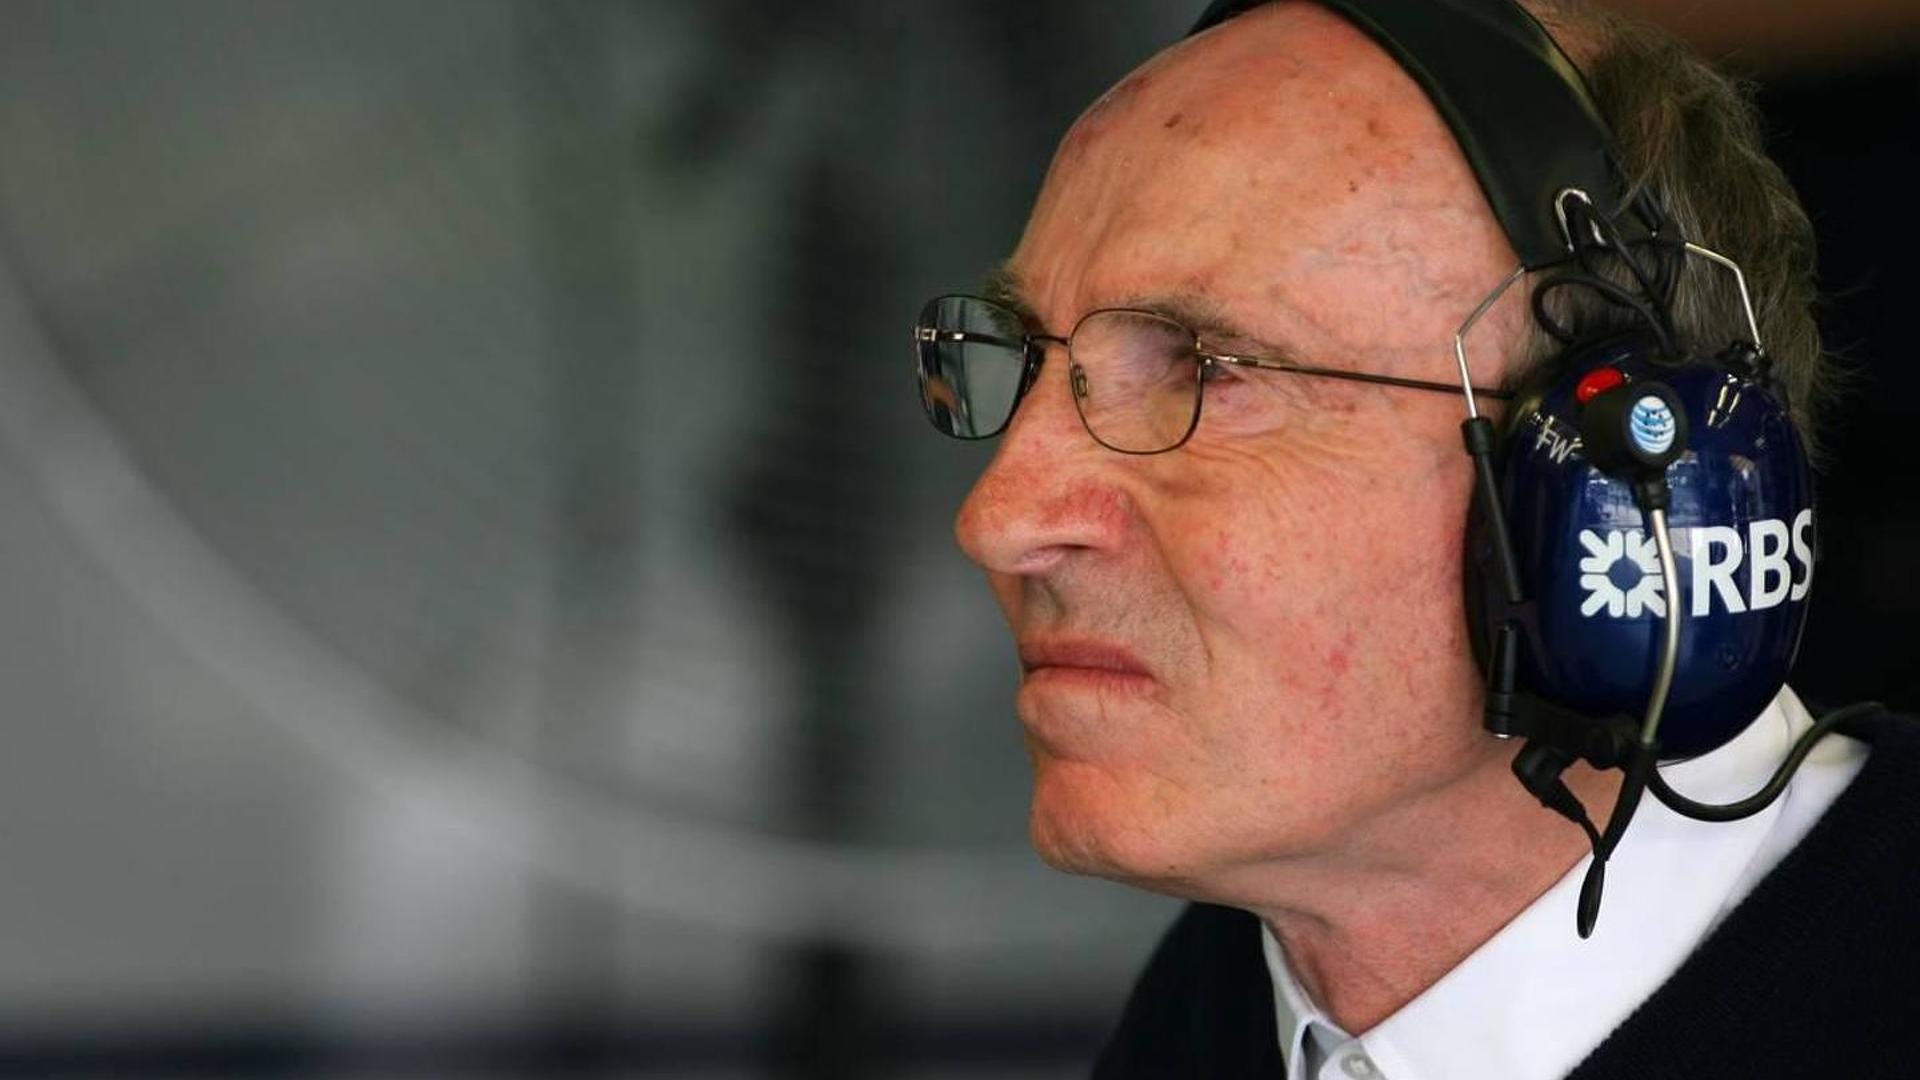 KERS should be compulsory in 2011 - Williams